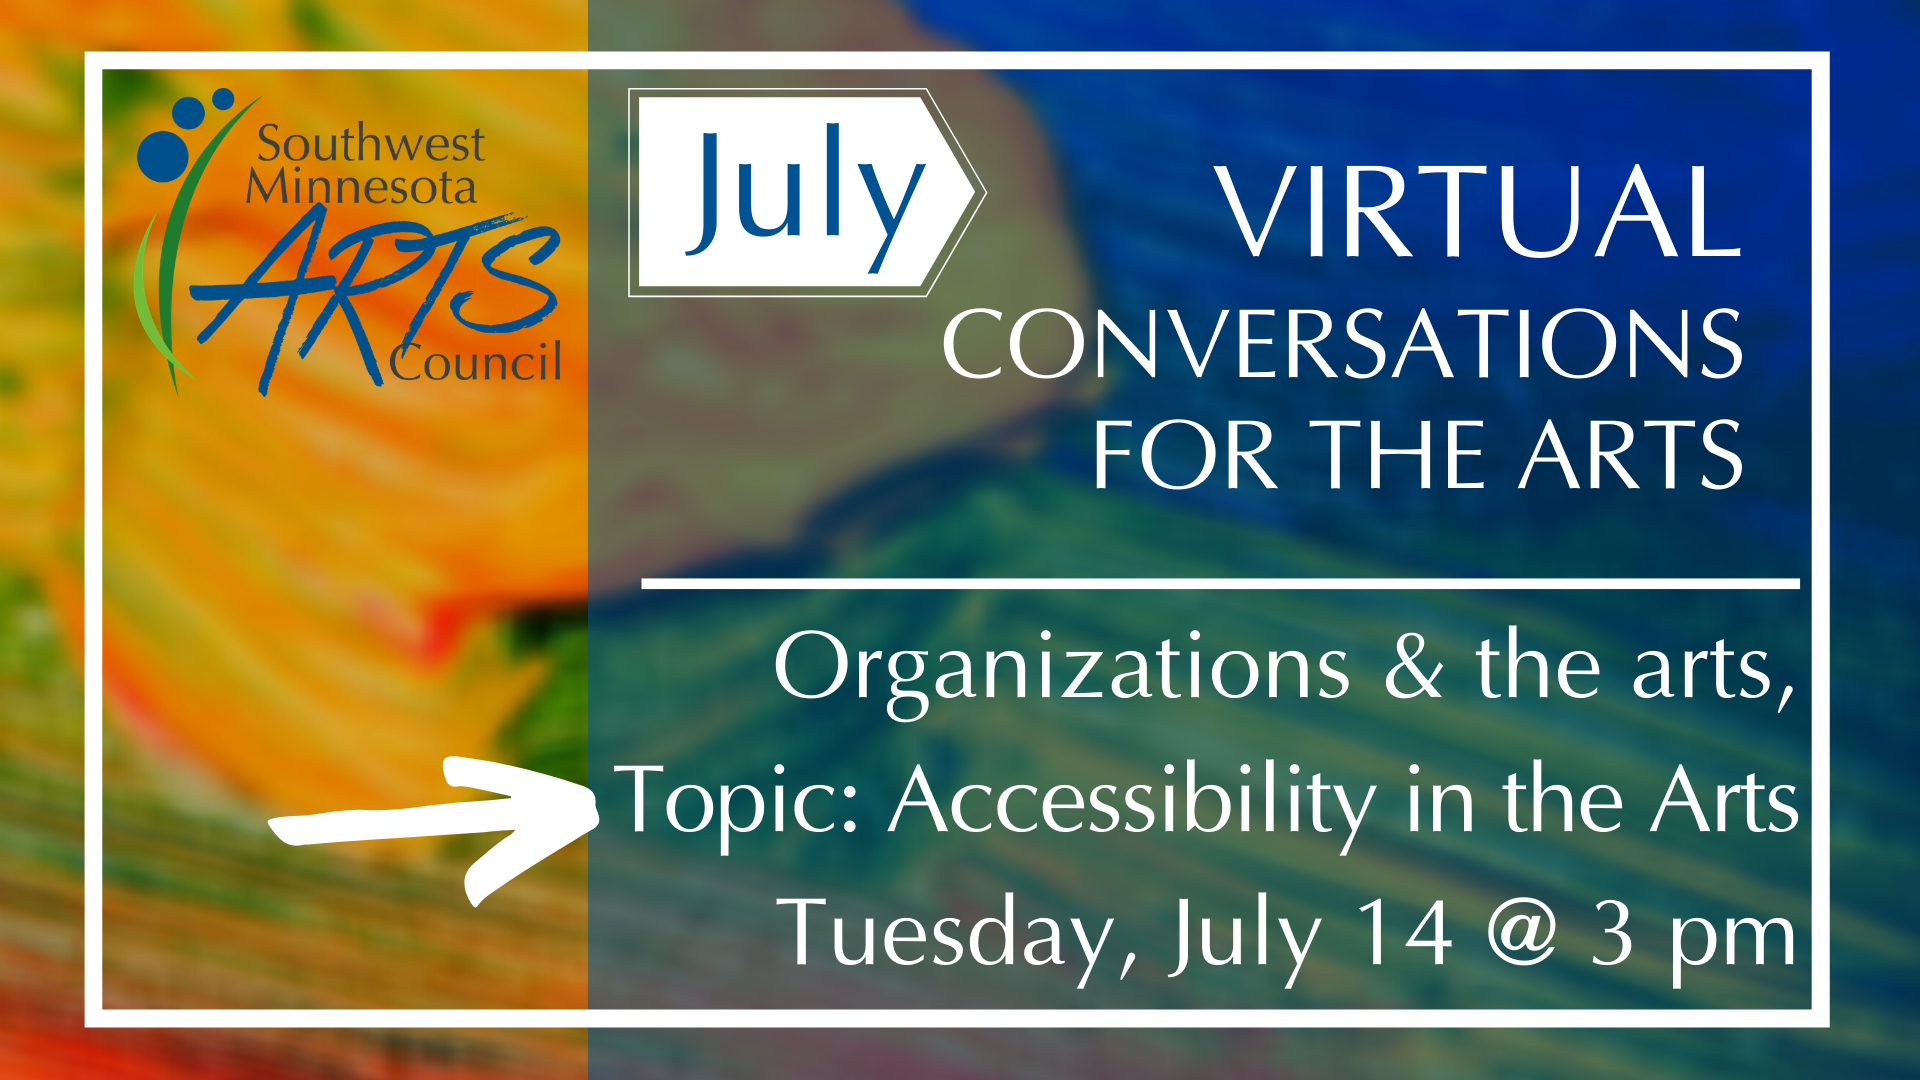 Background is colorful paint dabs of yellow, orange, blue and green. White text: July Virtual Conversations for the Arts. Organizations & the Arts, Topic: Accessibility in the arts, Tuesday, July 14th at 3 pm.